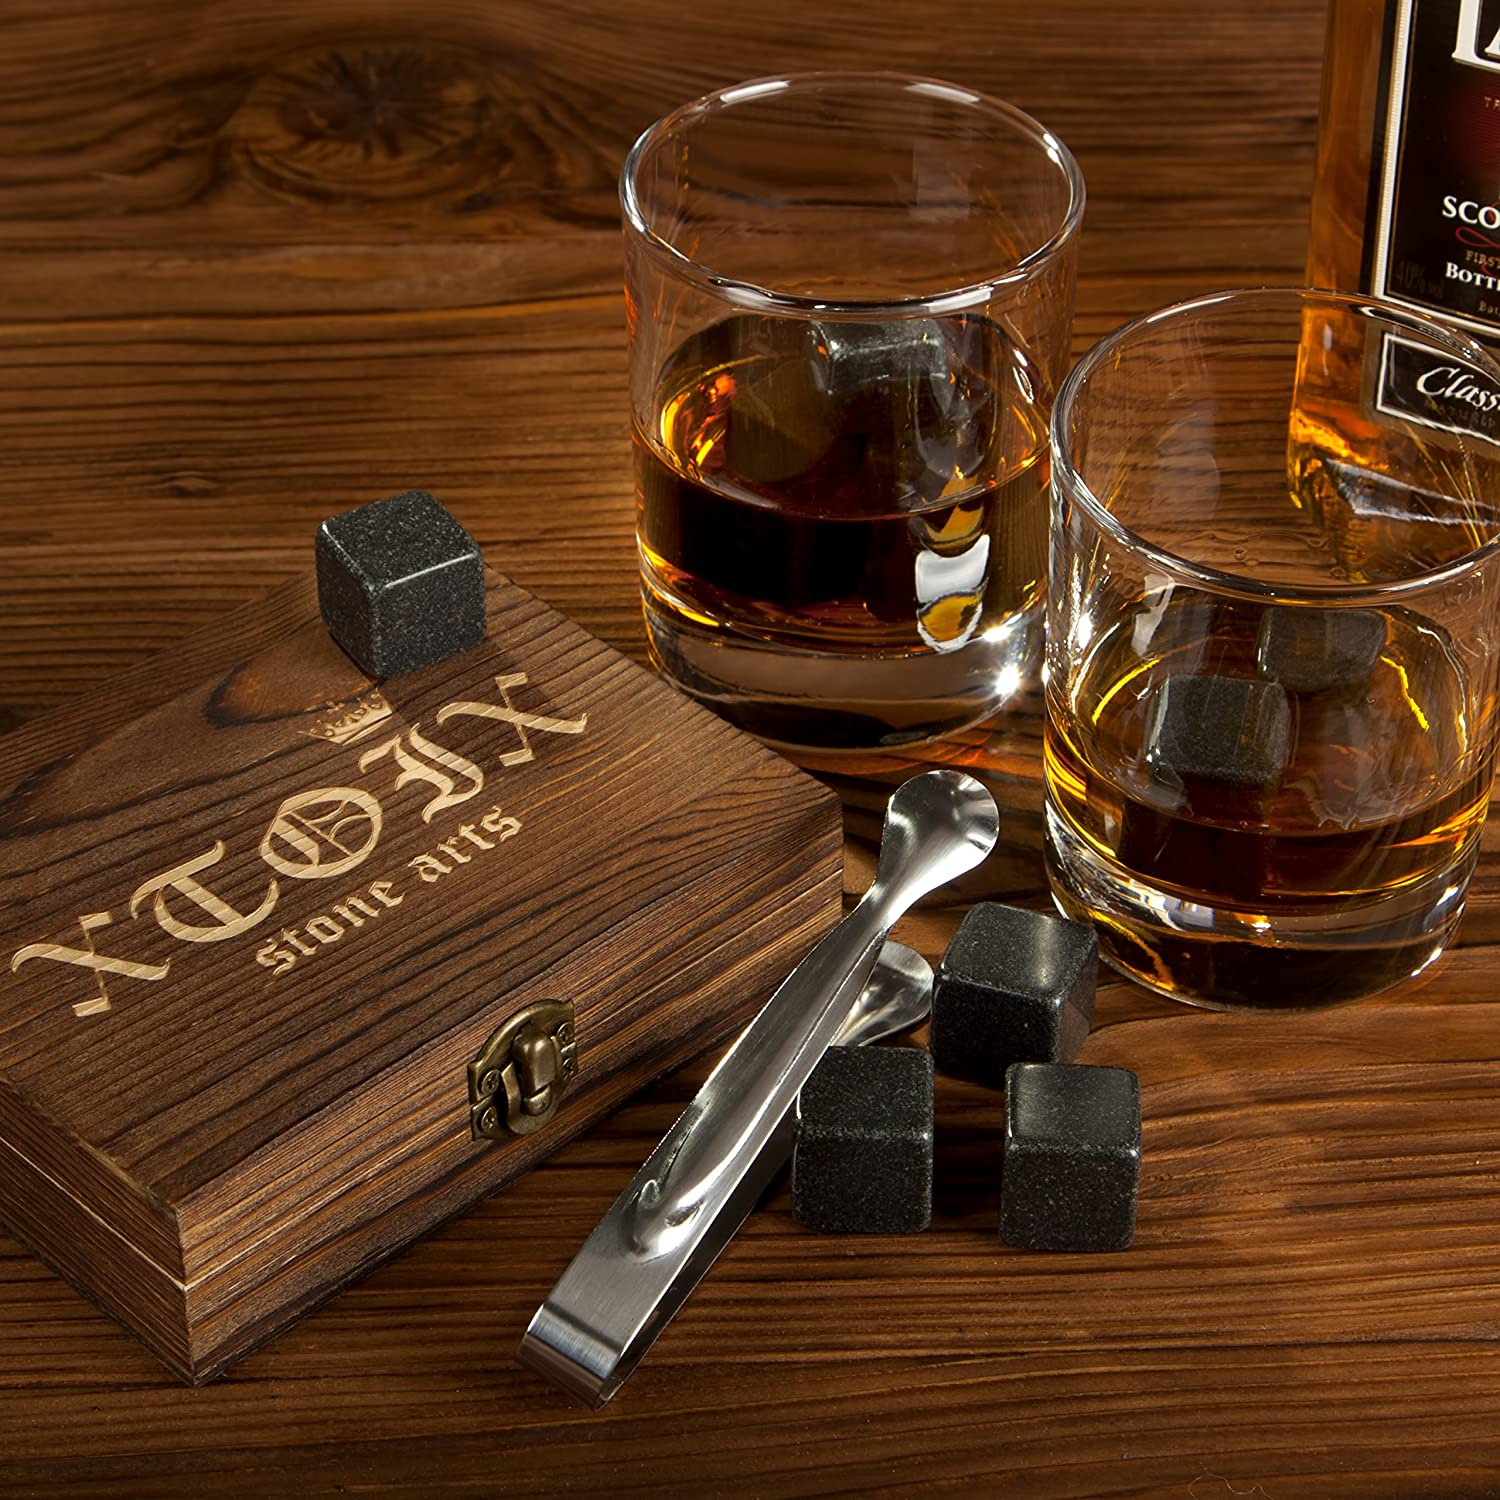 Premium Whiskey Stones Rocks - Gift Set for Chilling Drinks - Set of 9 Granite Dark Drink Chilling Cubes for Scotch Whiskey Irish and Wine Drinks - Nice Whiskey Ice Stones Gift Idea for Men Women